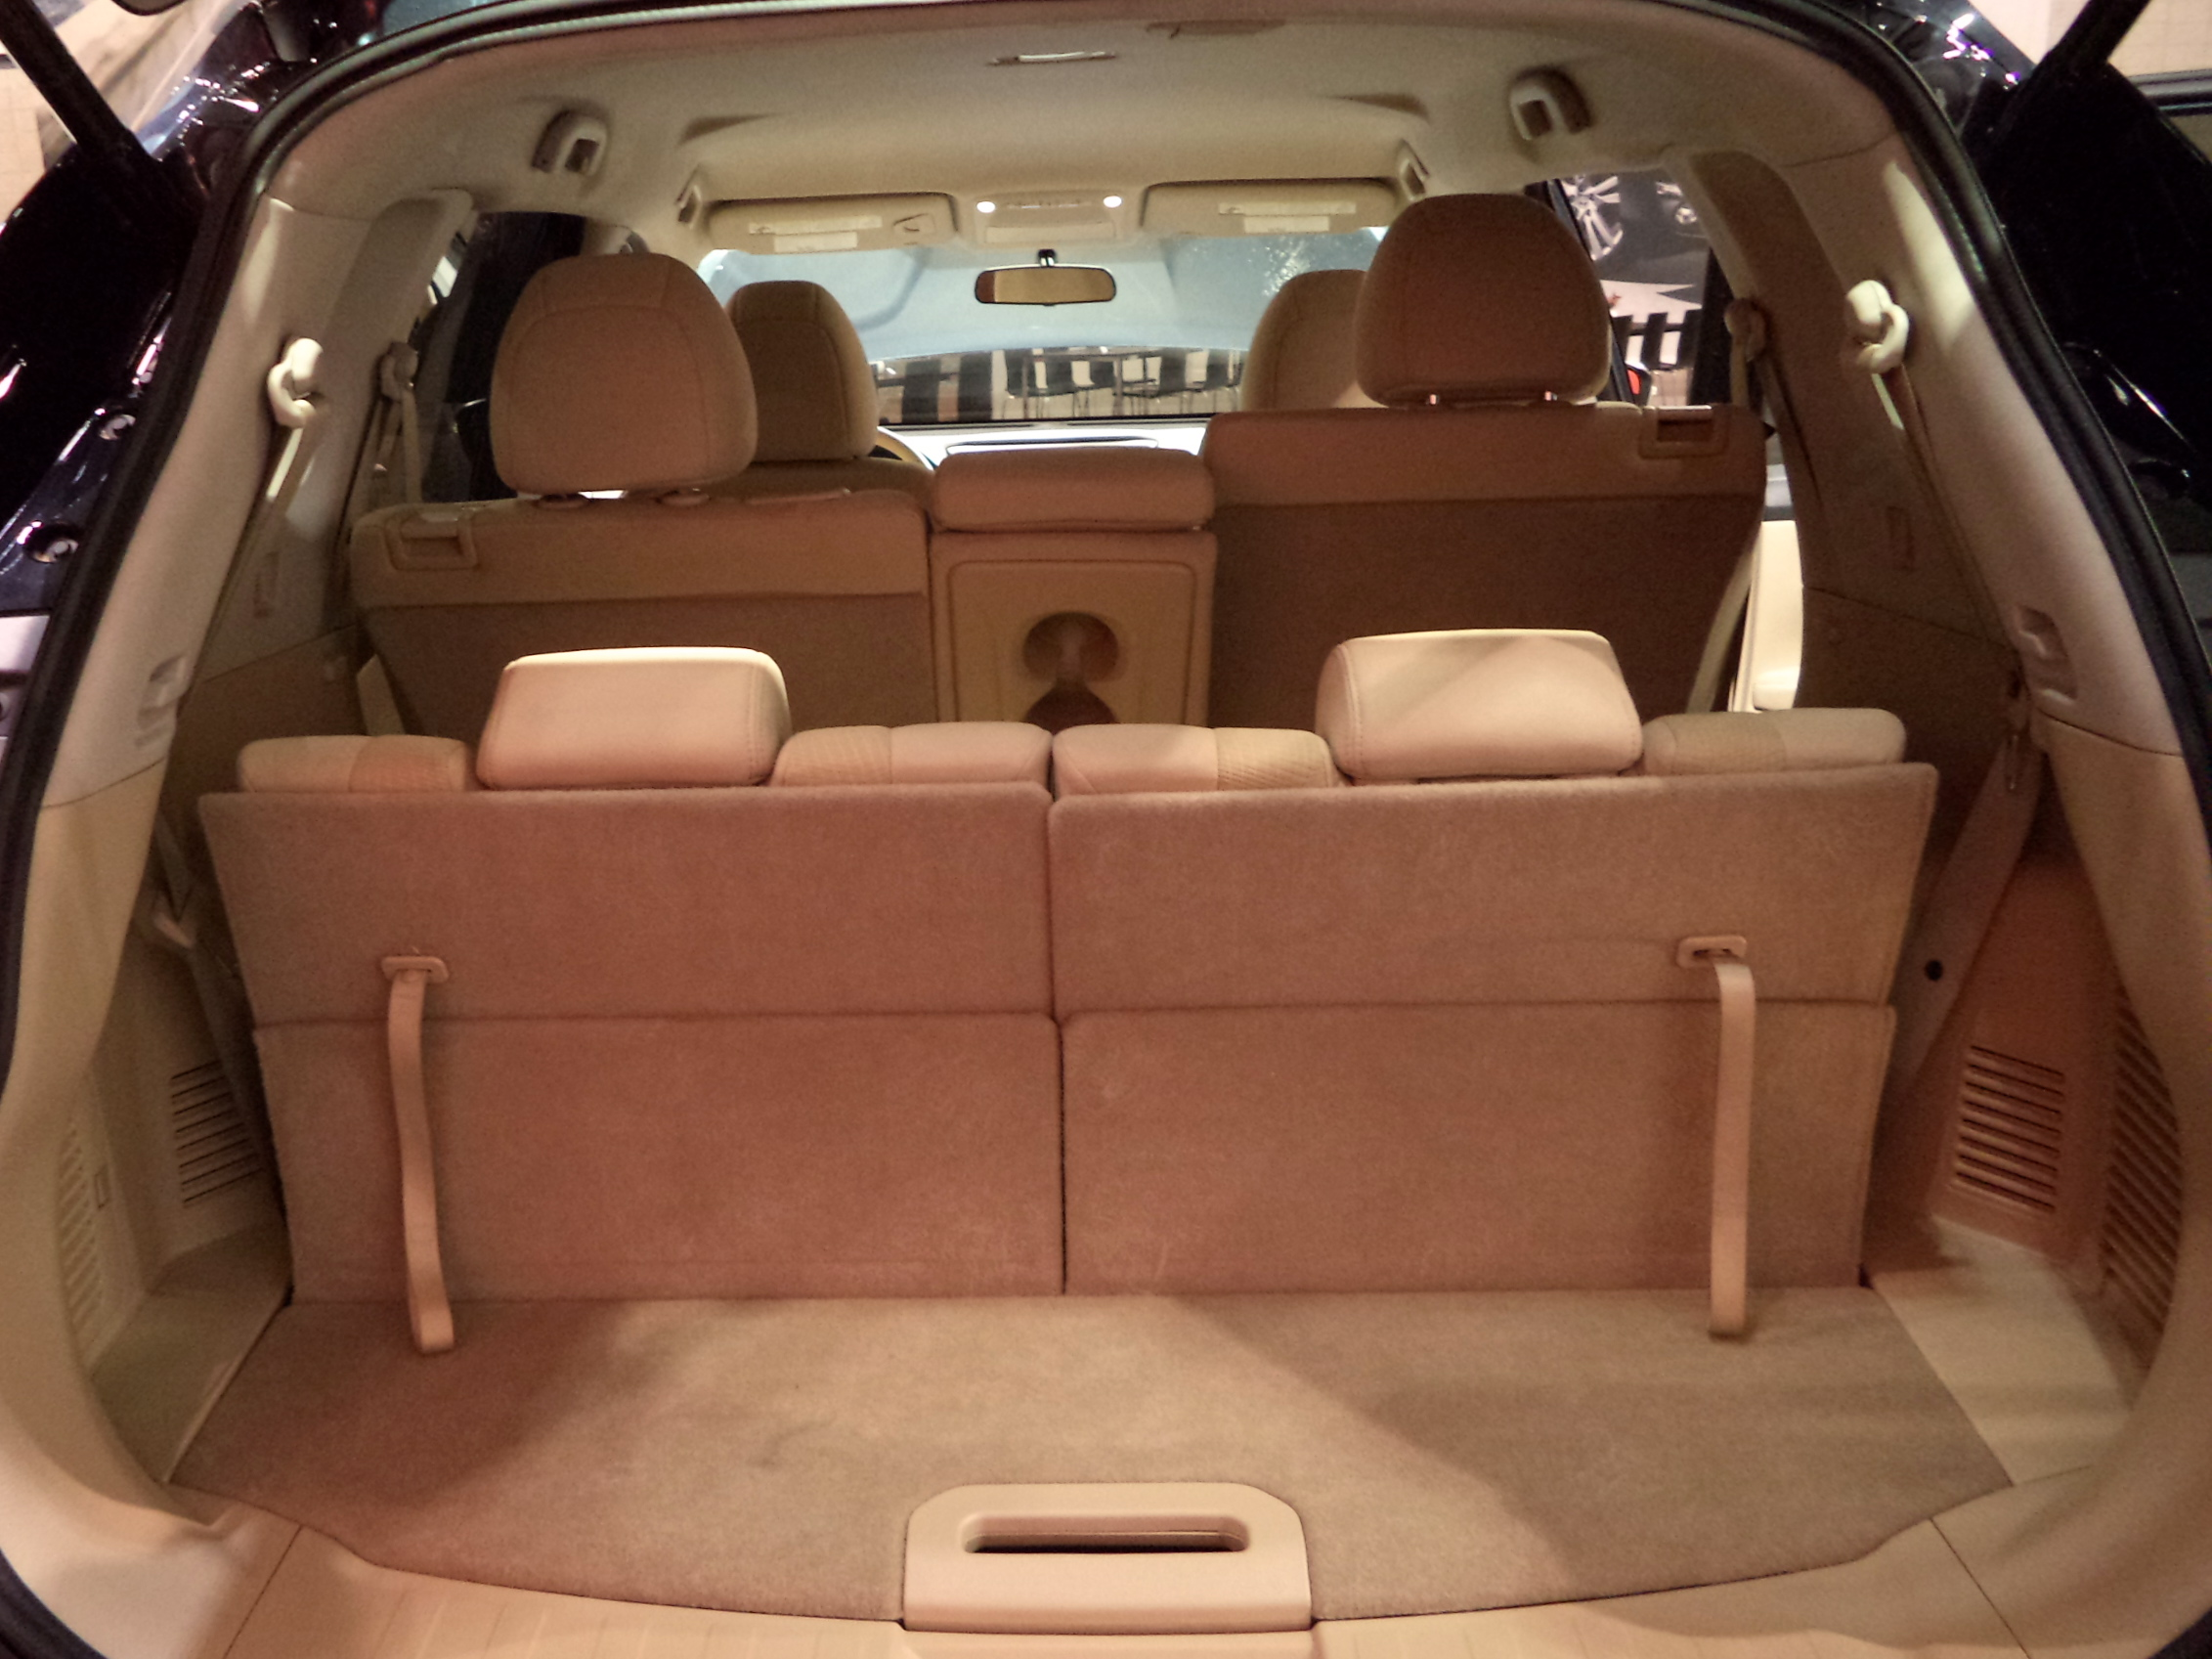 nissan rogue third row seat autos post. Black Bedroom Furniture Sets. Home Design Ideas